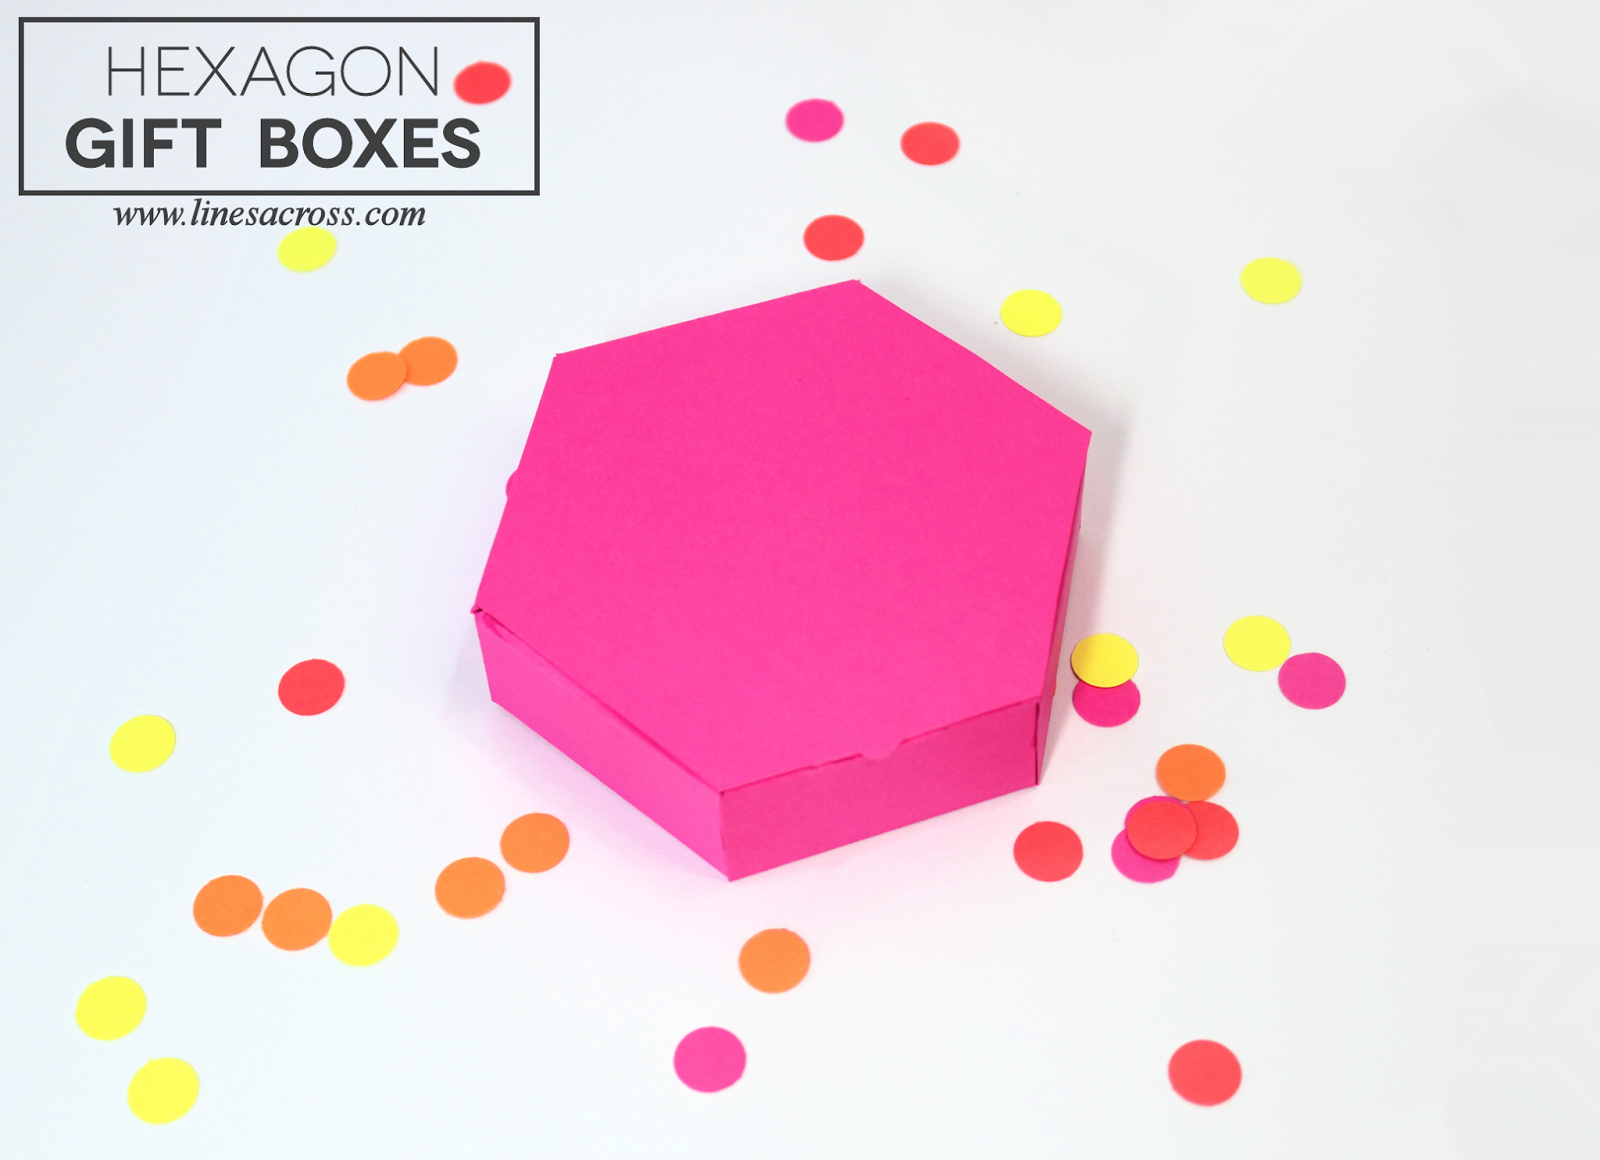 15 Paper Gift Box Templates - Lines Across - Gift Box Templates Free Printable